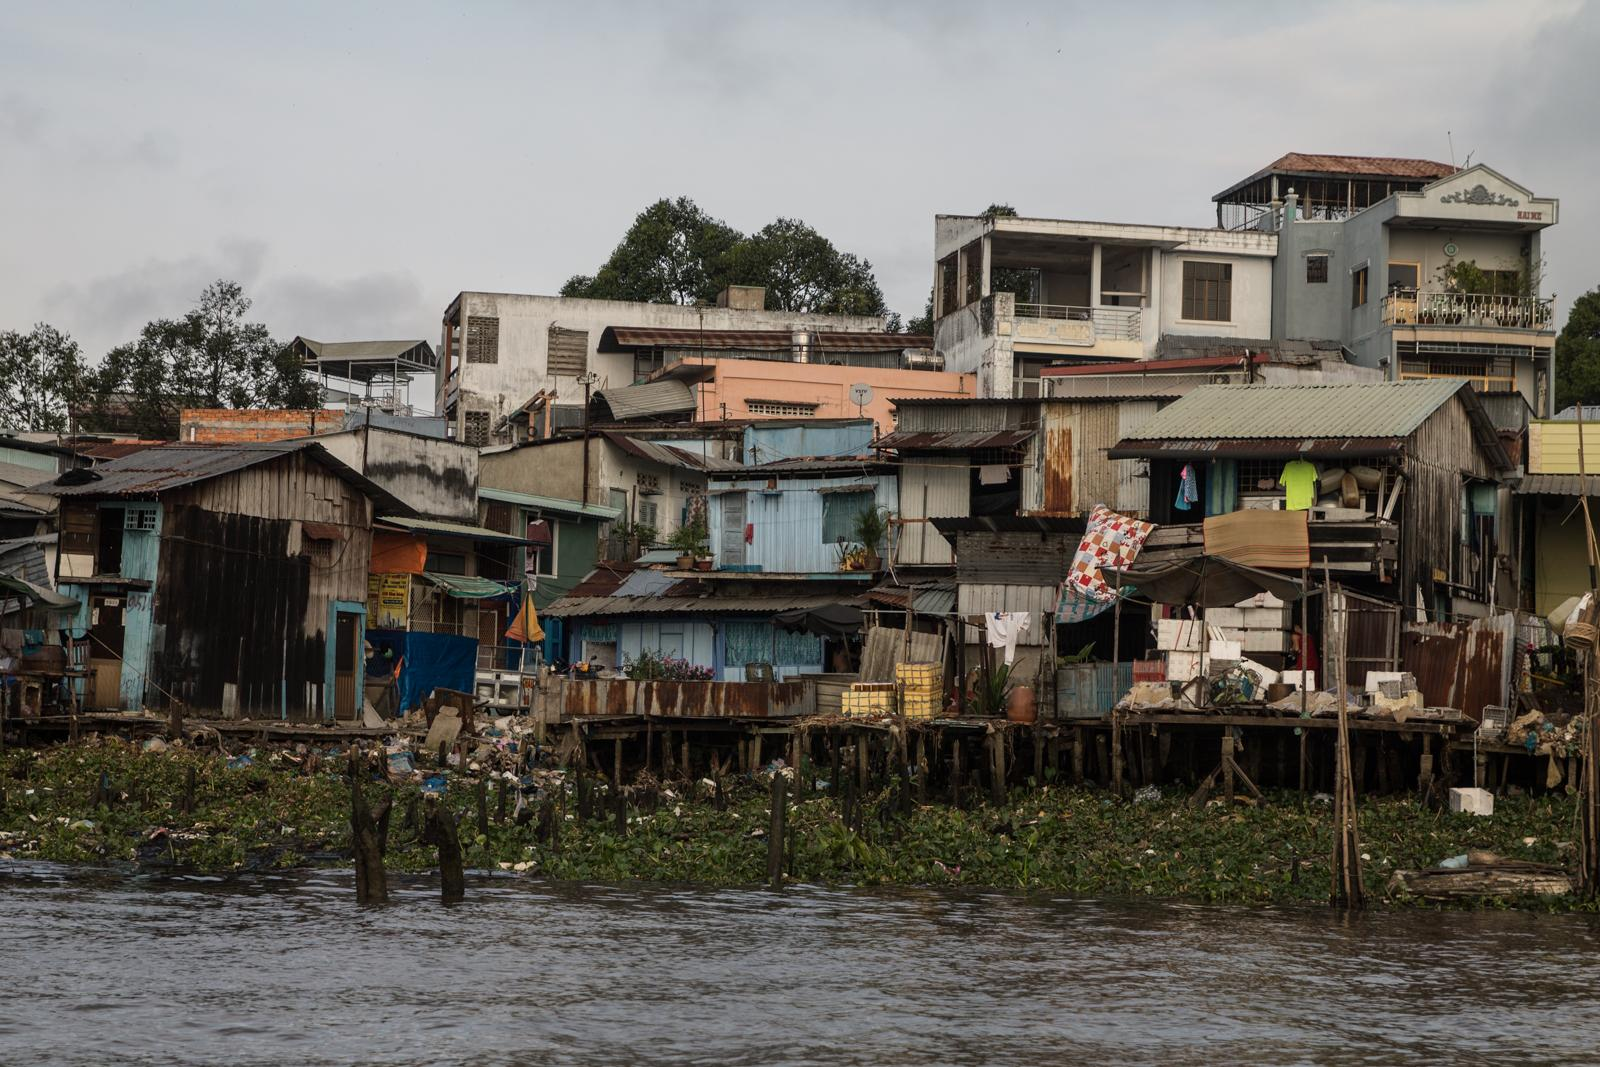 Houses in the Mekong Delta